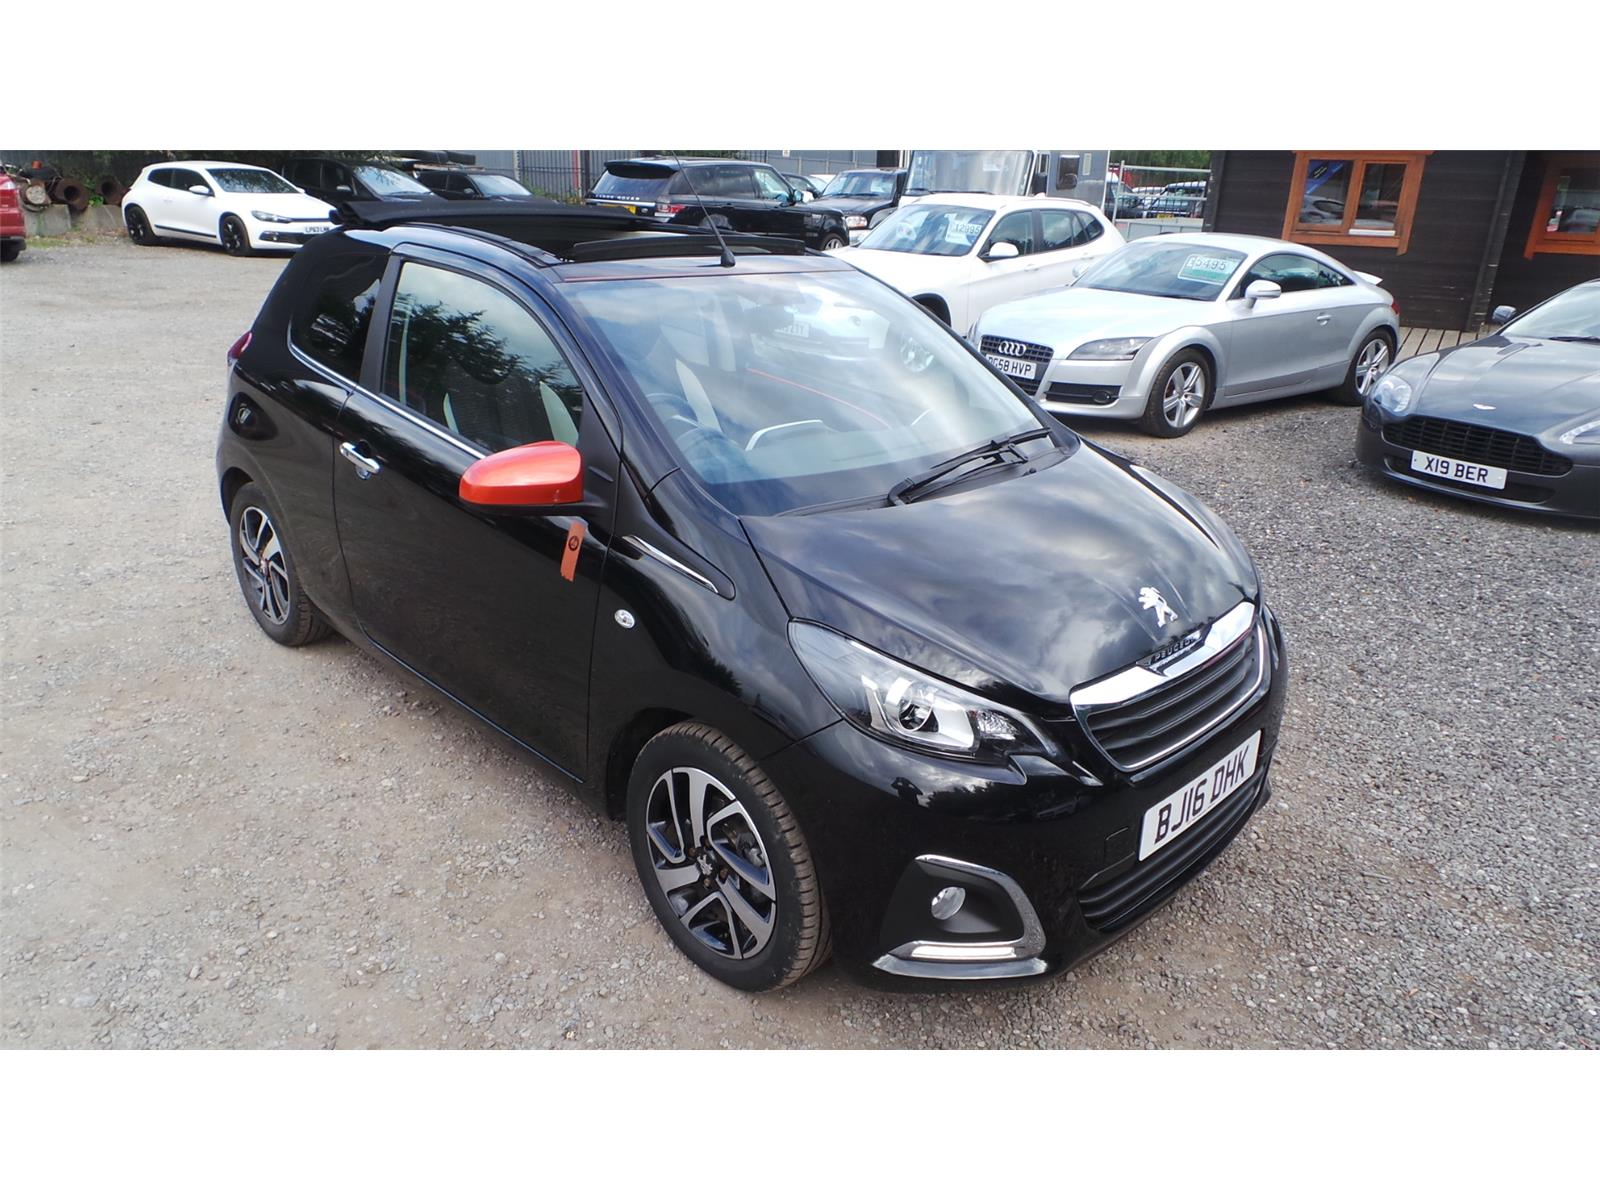 2016 Peugeot 108 Top Roland Garros PureTech 1199 Petrol Manual 5 Speed 3 Door Hatchback